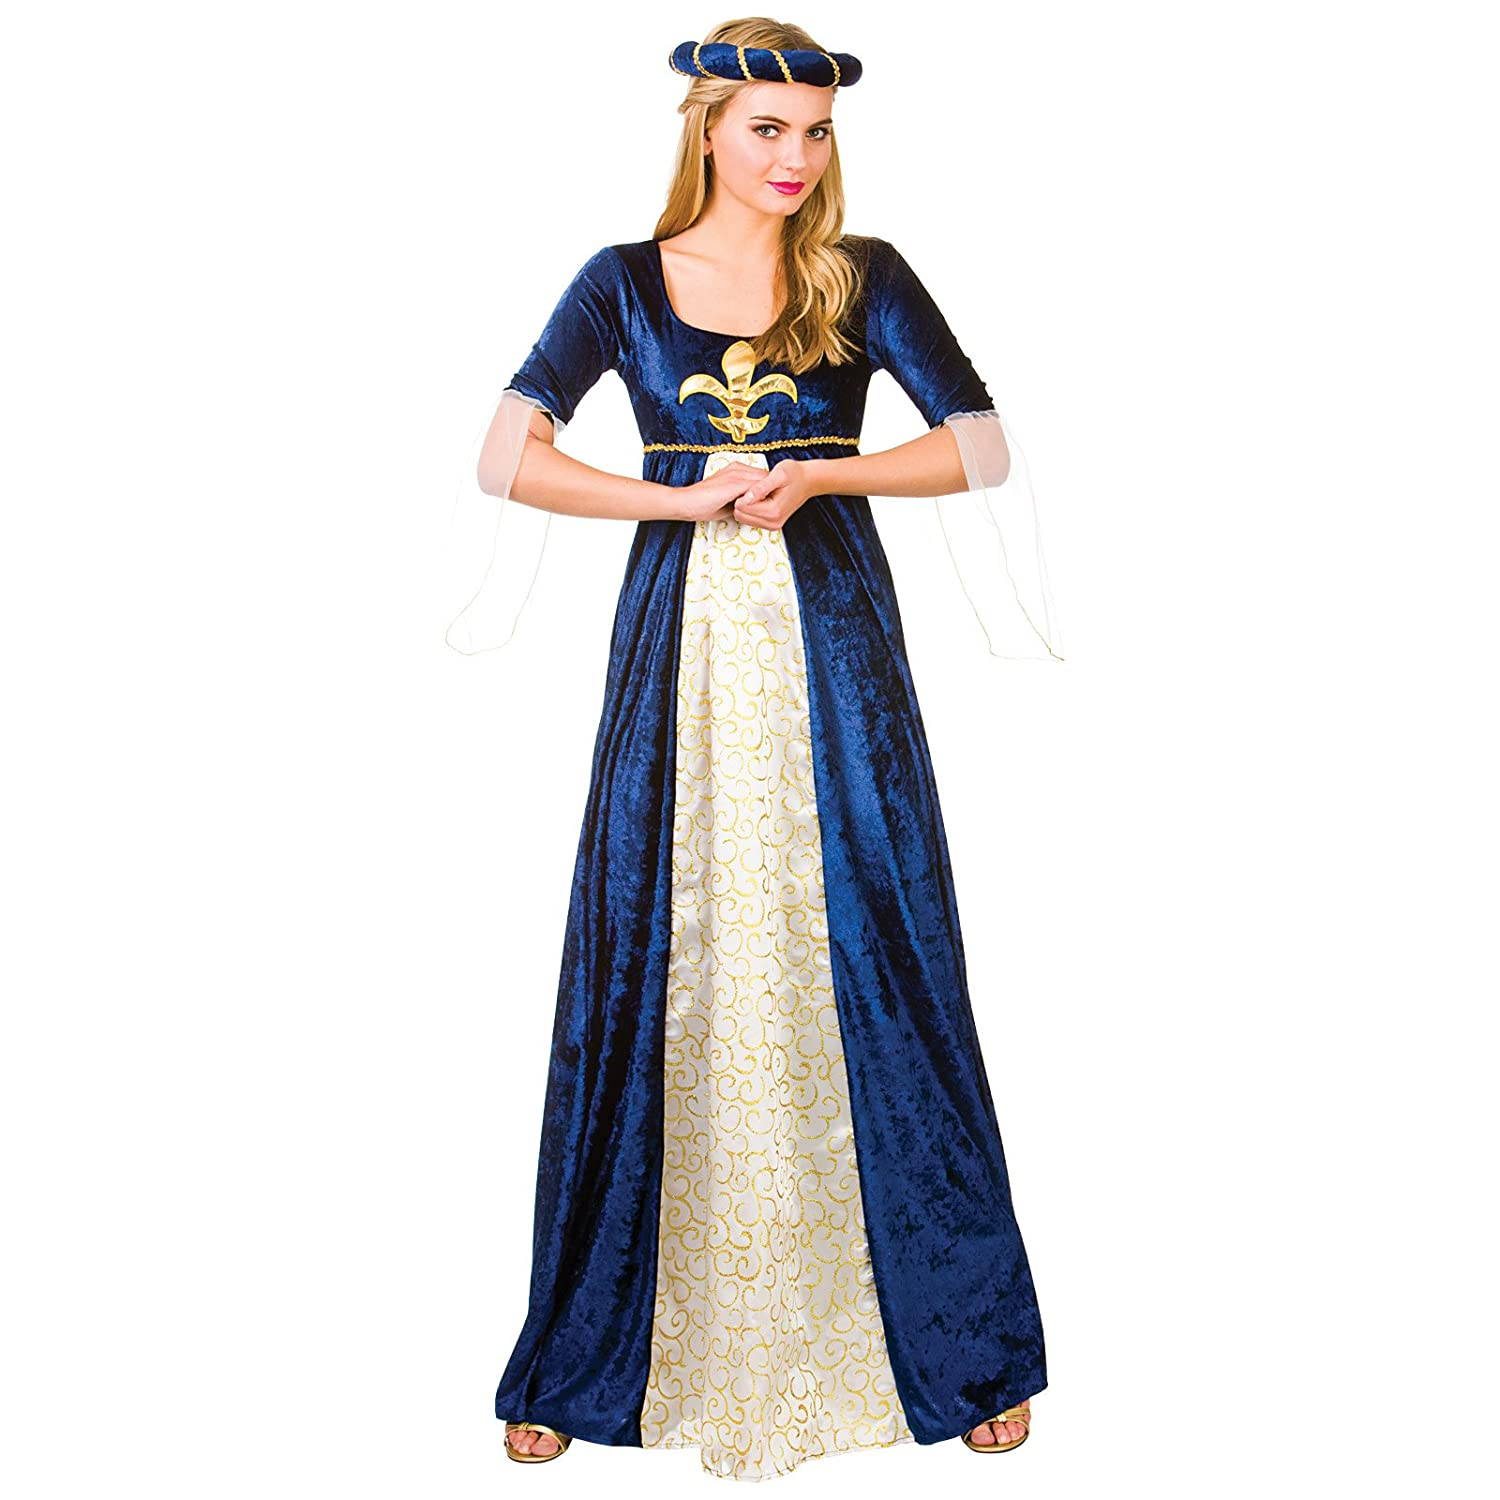 Medieval Maiden - Adult Costume Lady: M (UK:14-16): Amazon.co.uk ...